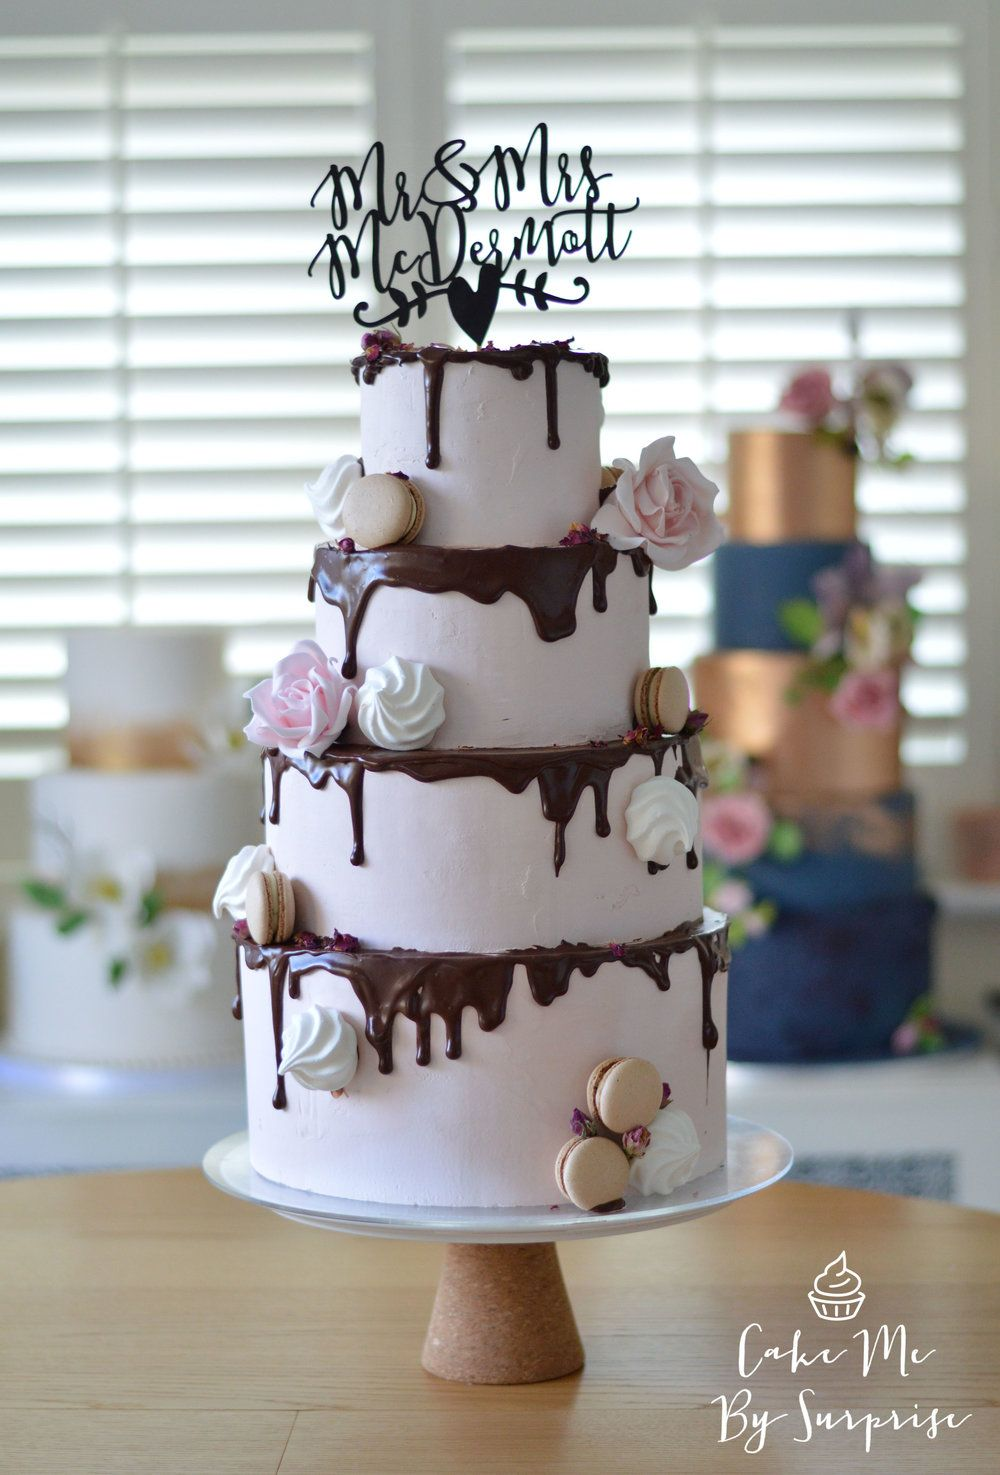 Drip Buttercream Wedding Cakes By Cake Me By Surprise Kent Based Cake Studio In The Uk Dripcakes Dripweddingcak Cool Wedding Cakes Cake Round Wedding Cakes